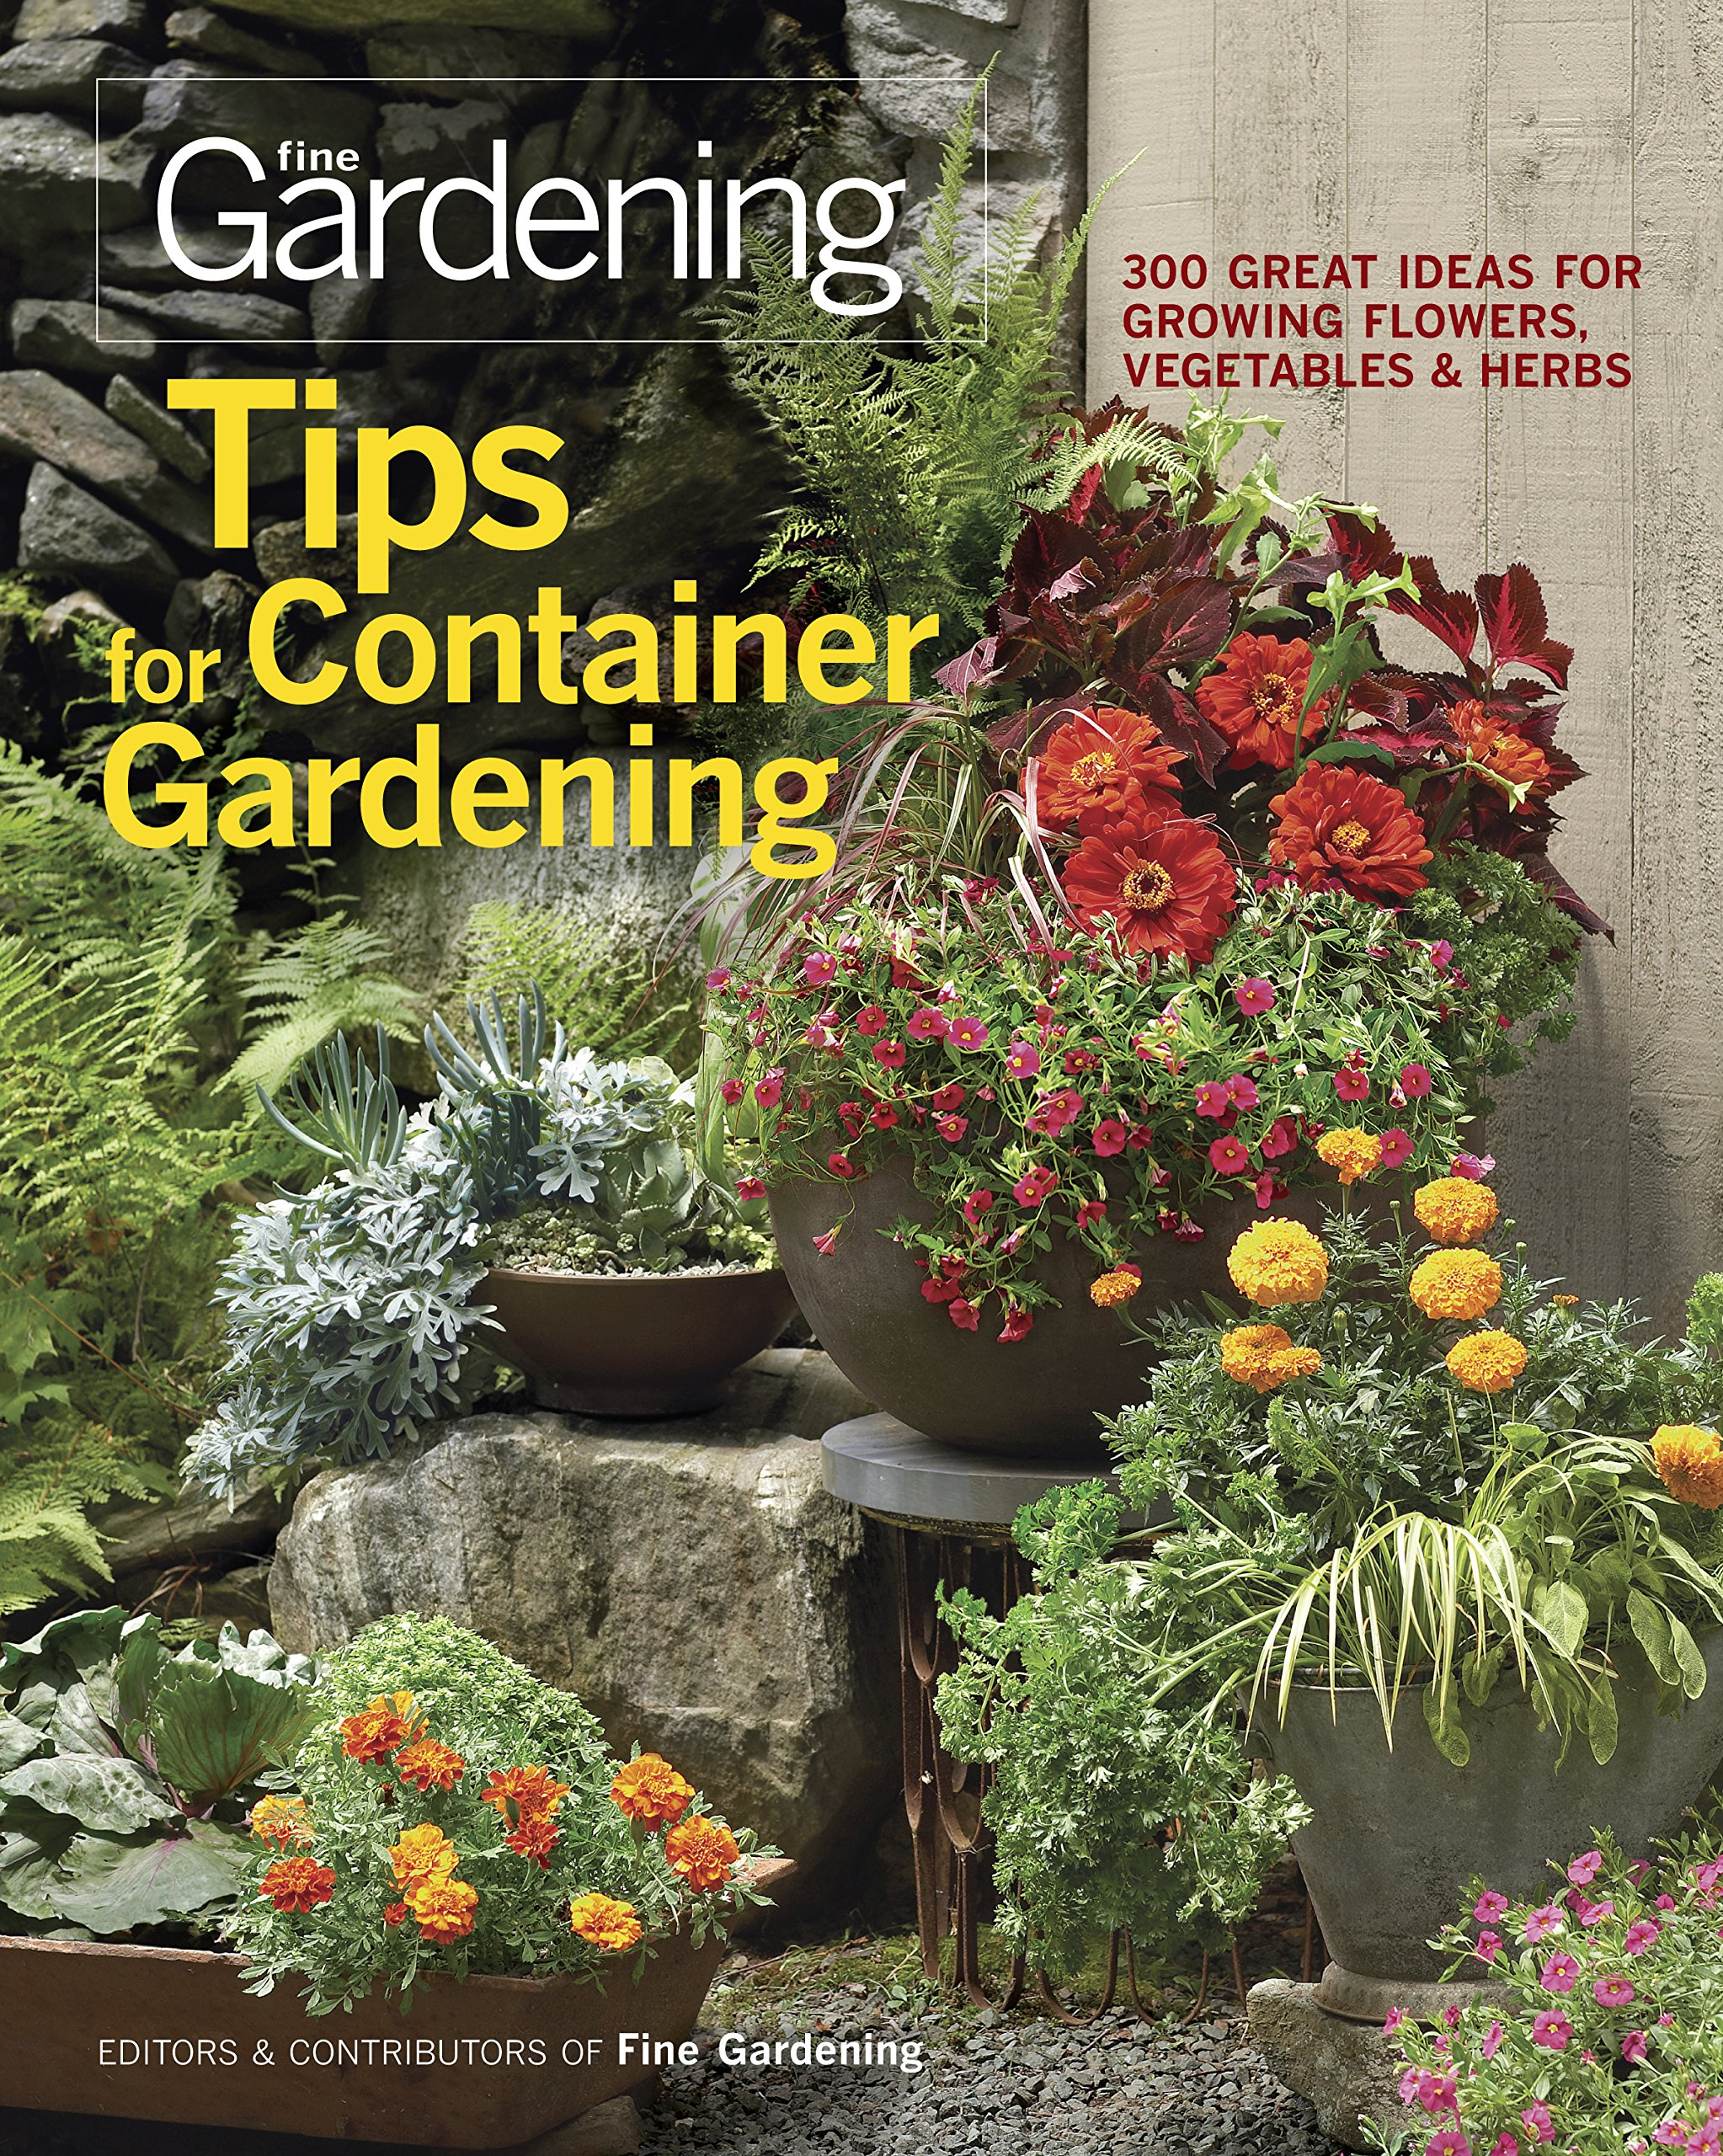 Tips For Container Gardening 300 Great Ideas For Growing Flowers